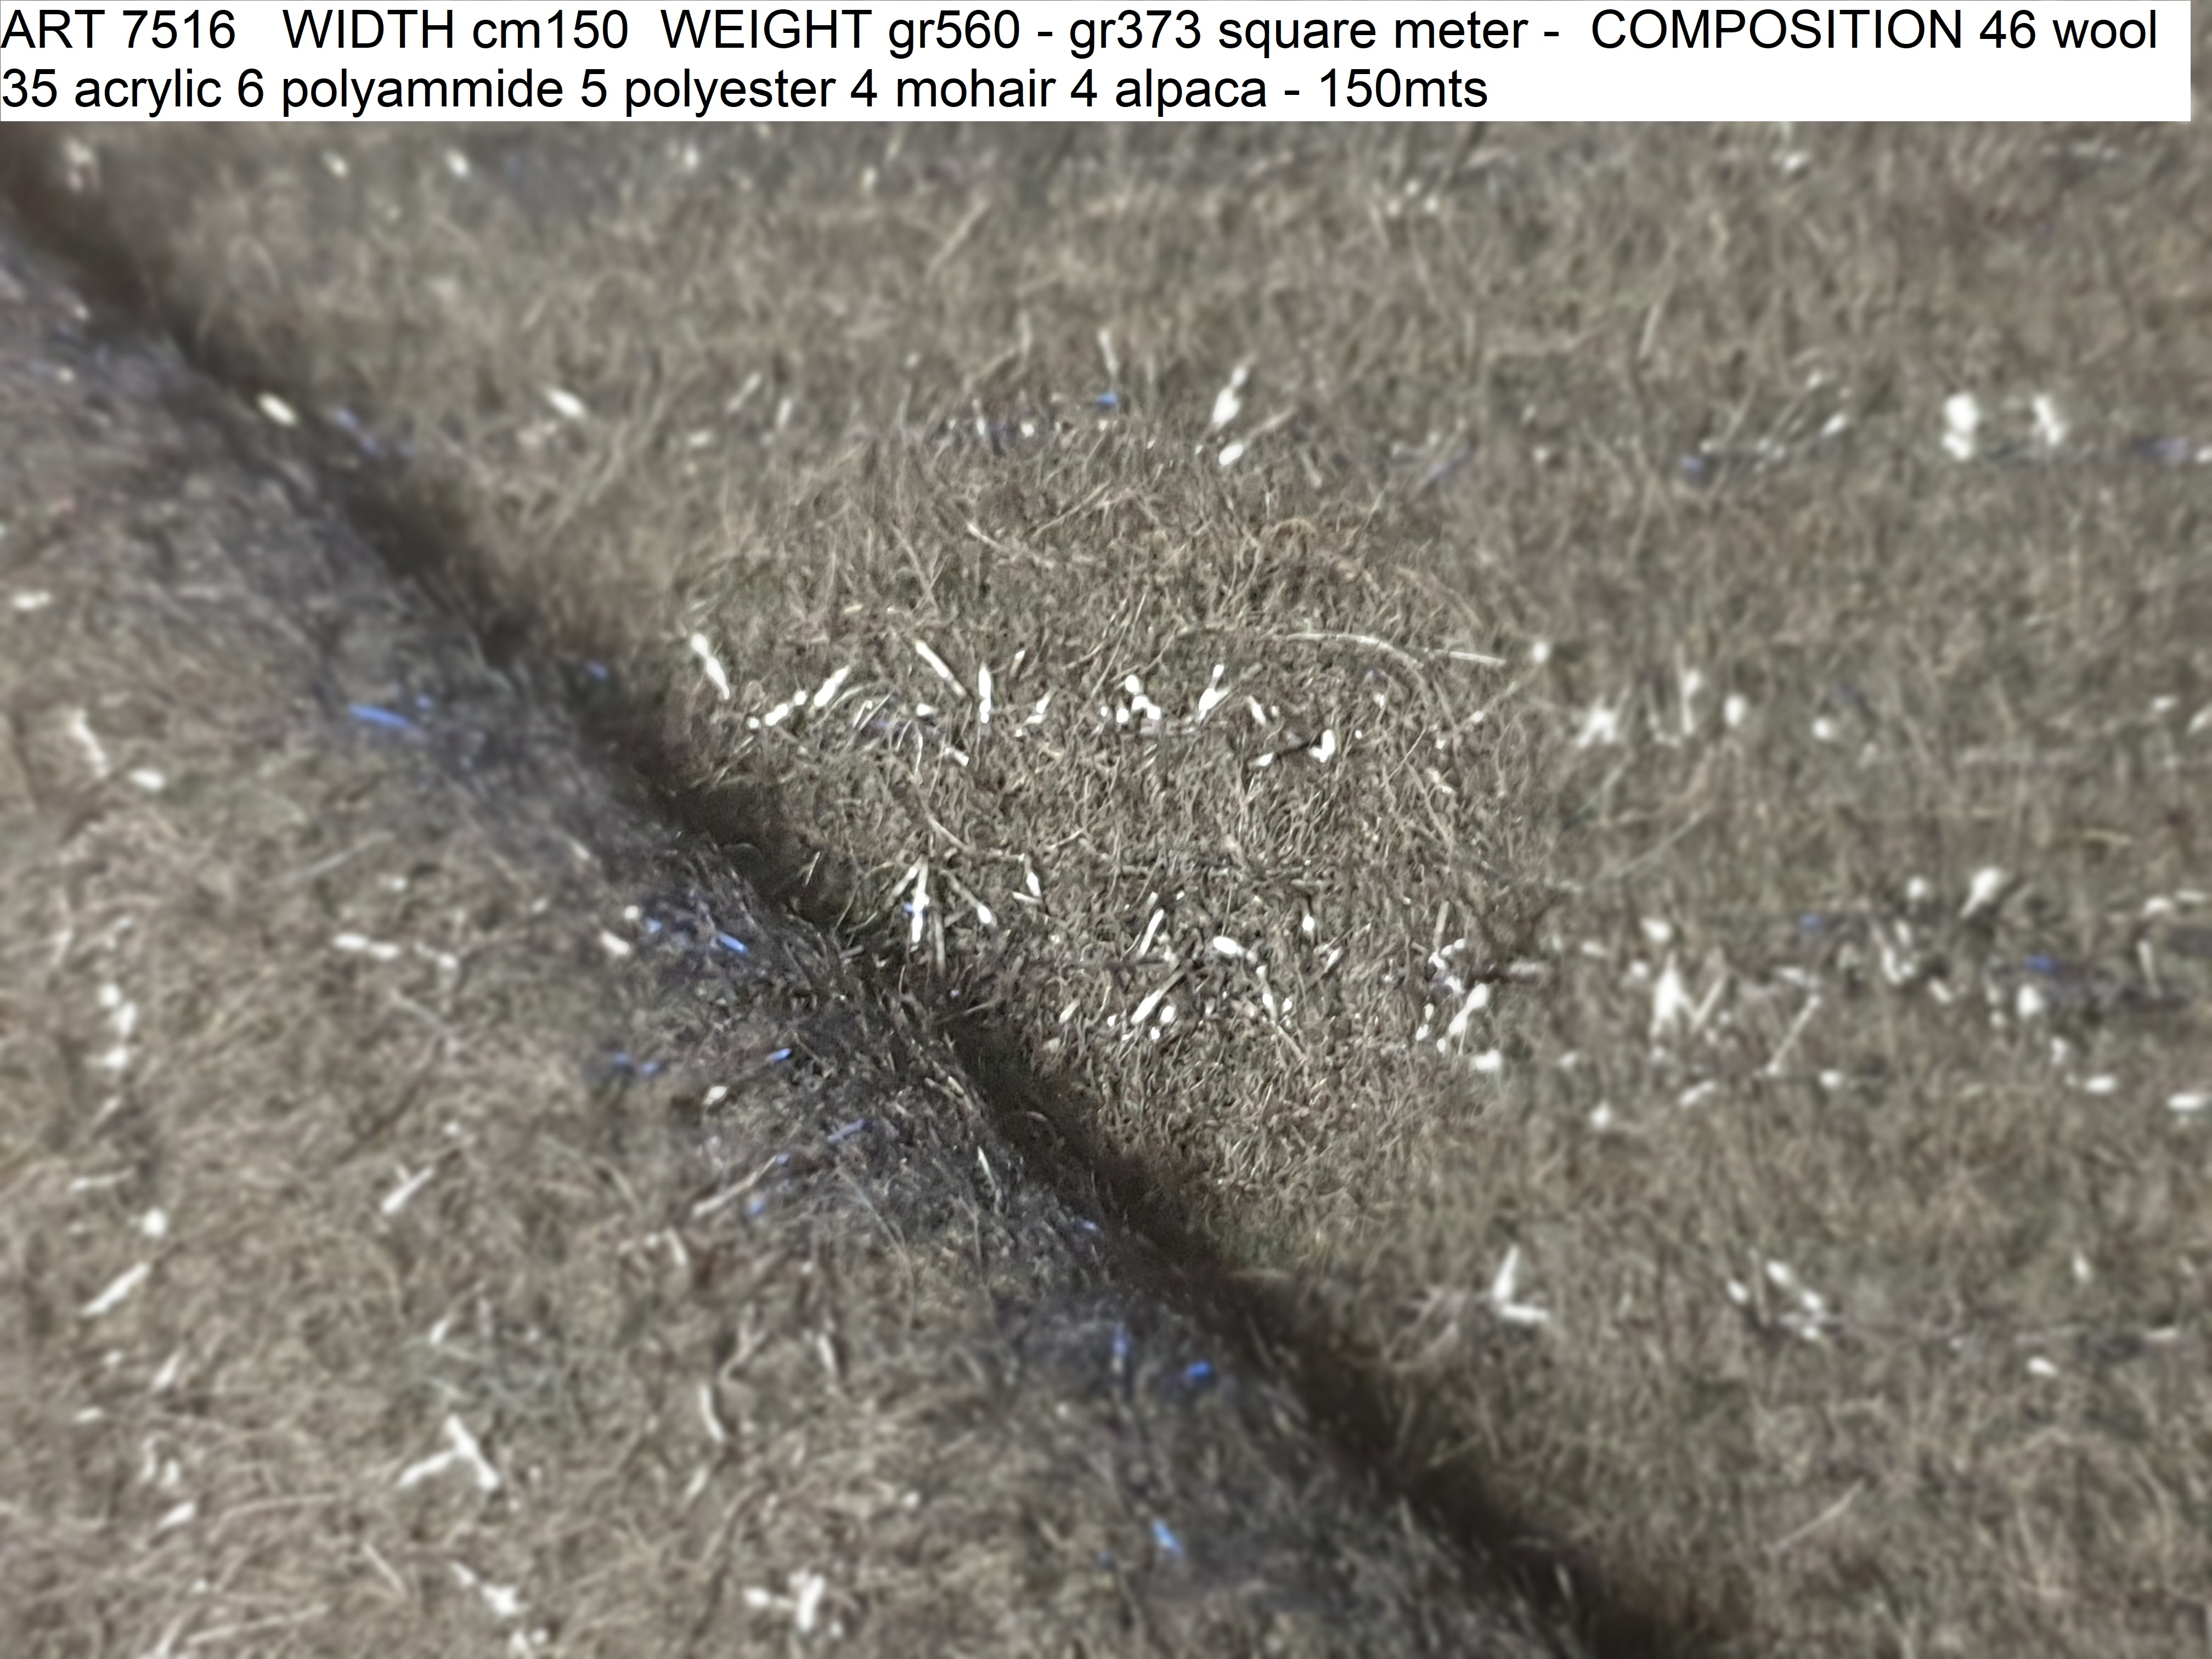 ART 7516 WIDTH cm150 WEIGHT gr560 - gr373 square meter - COMPOSITION 46 wool 35 acrylic 6 polyammide 5 polyester 4 mohair 4 alpaca - 150mts